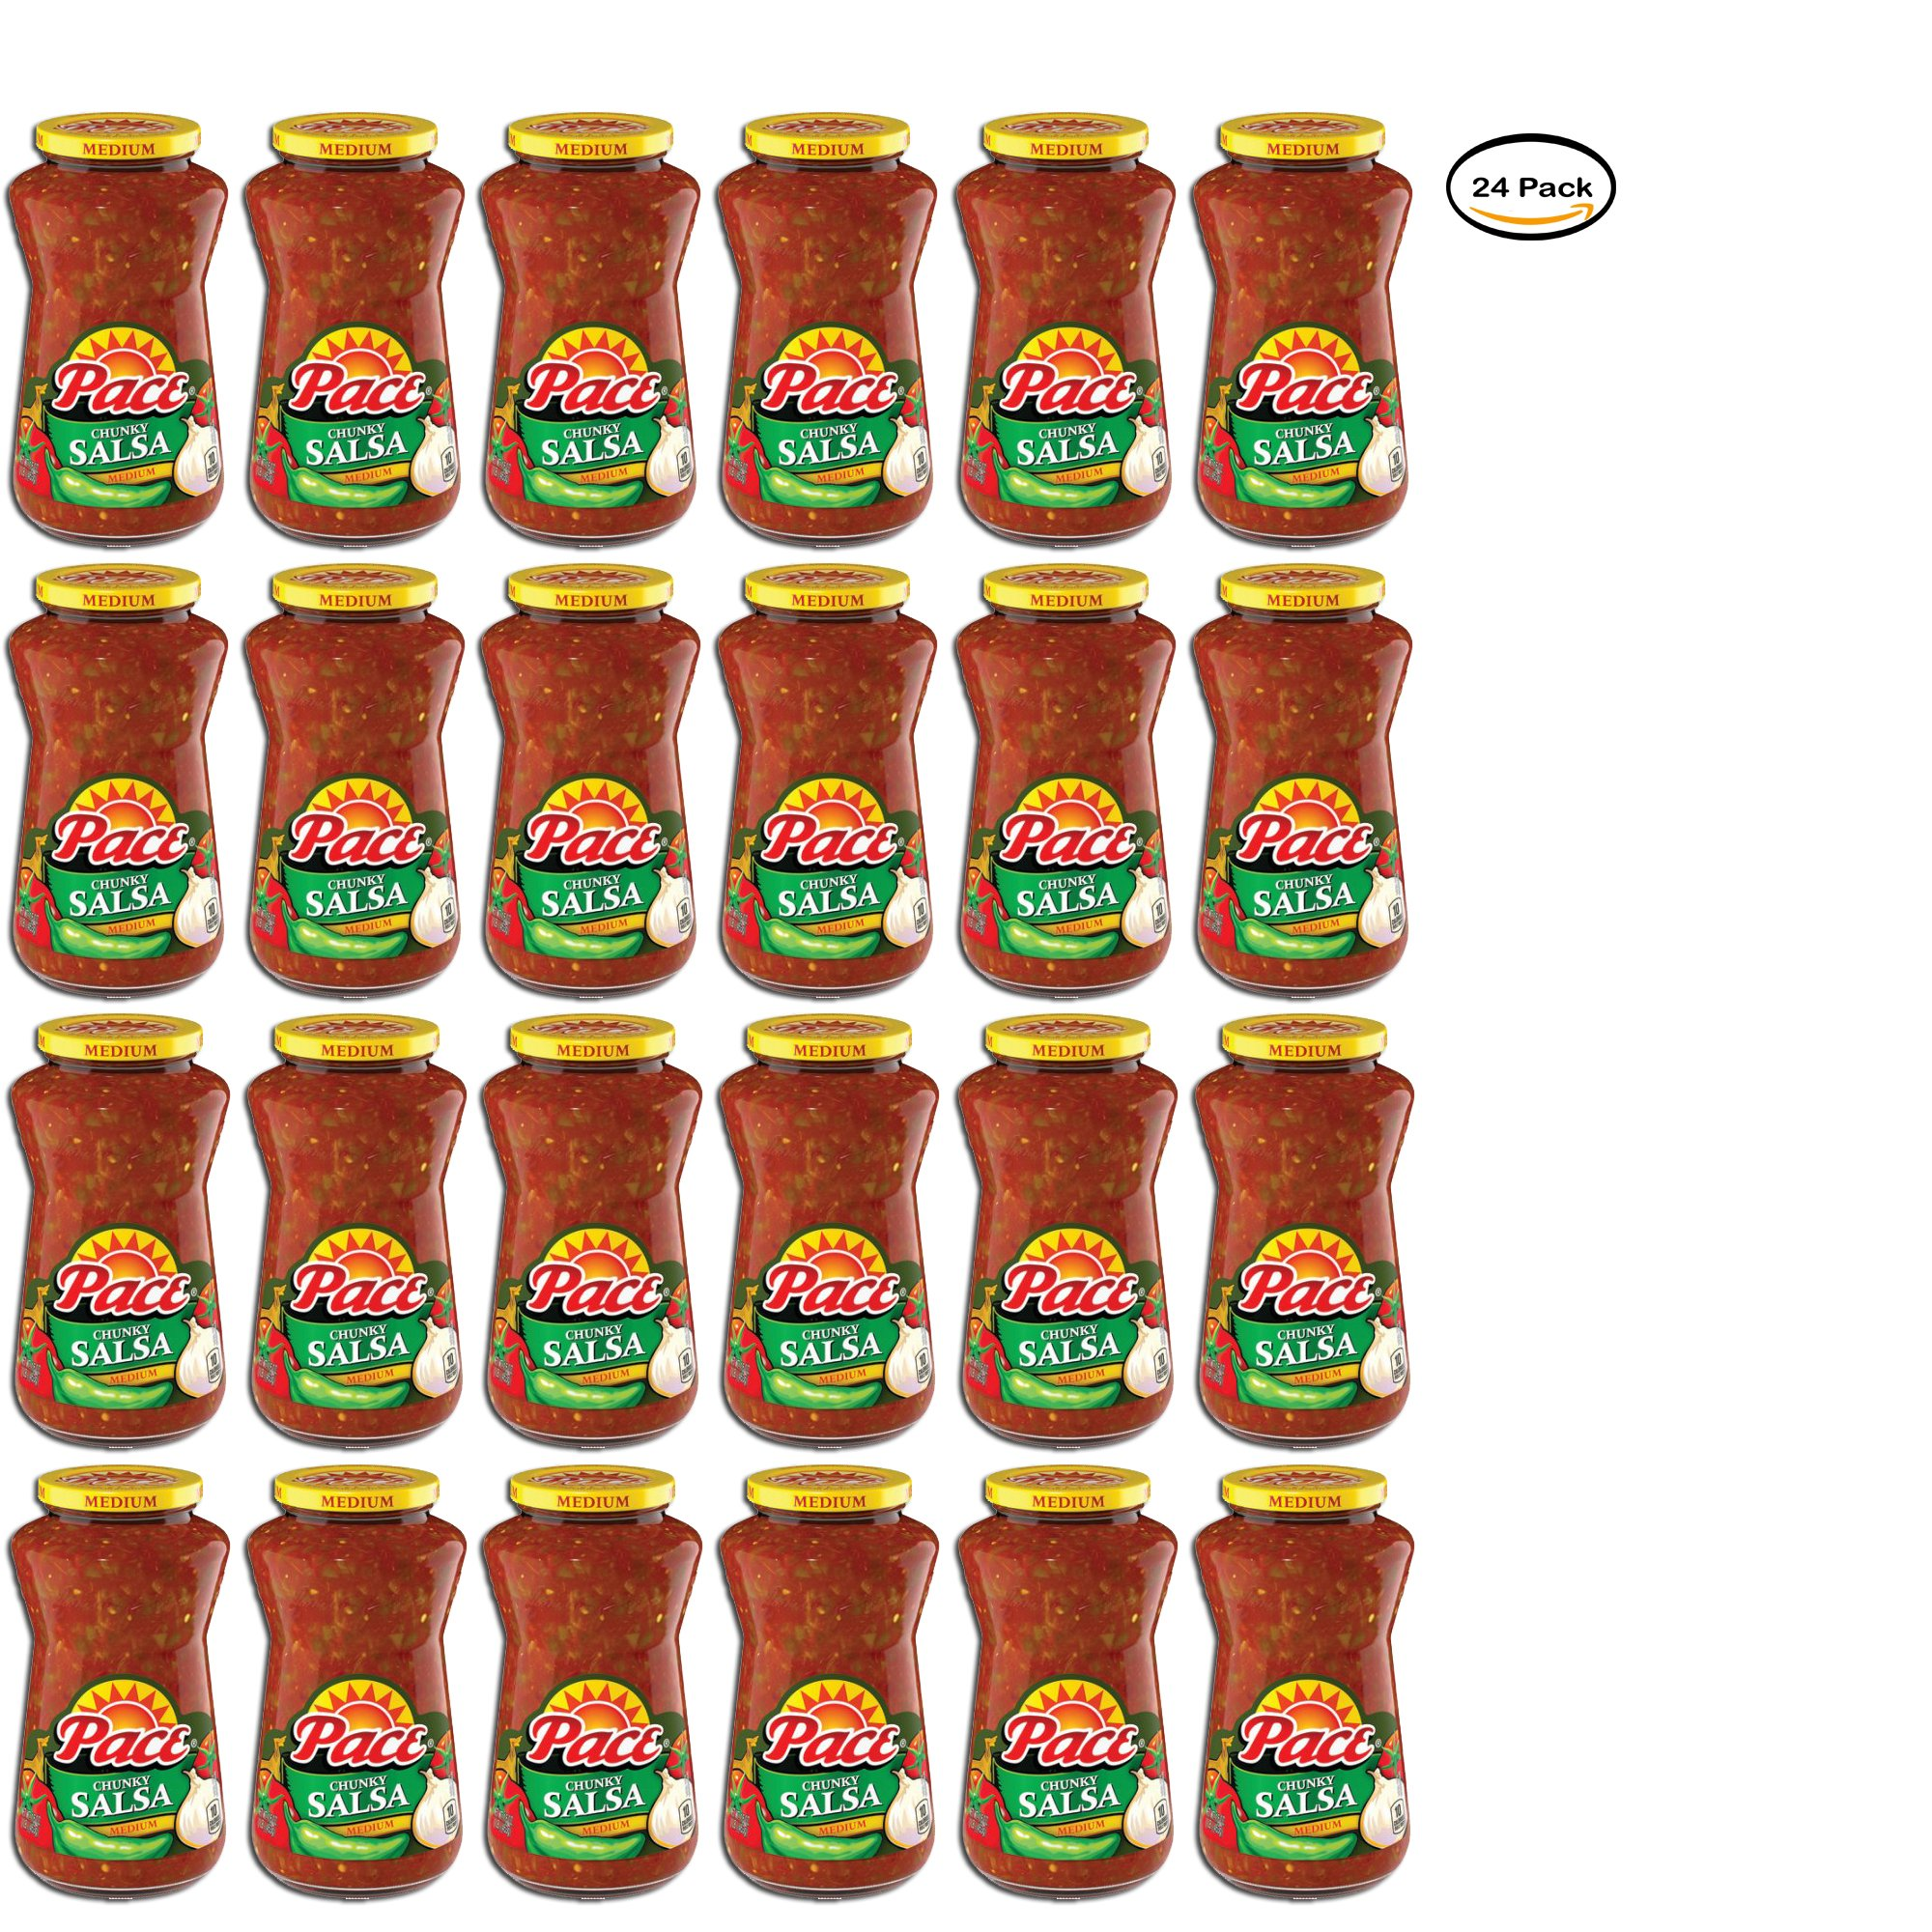 PACK OF 24 - Pace Chunky Salsa Medium, 16 oz.